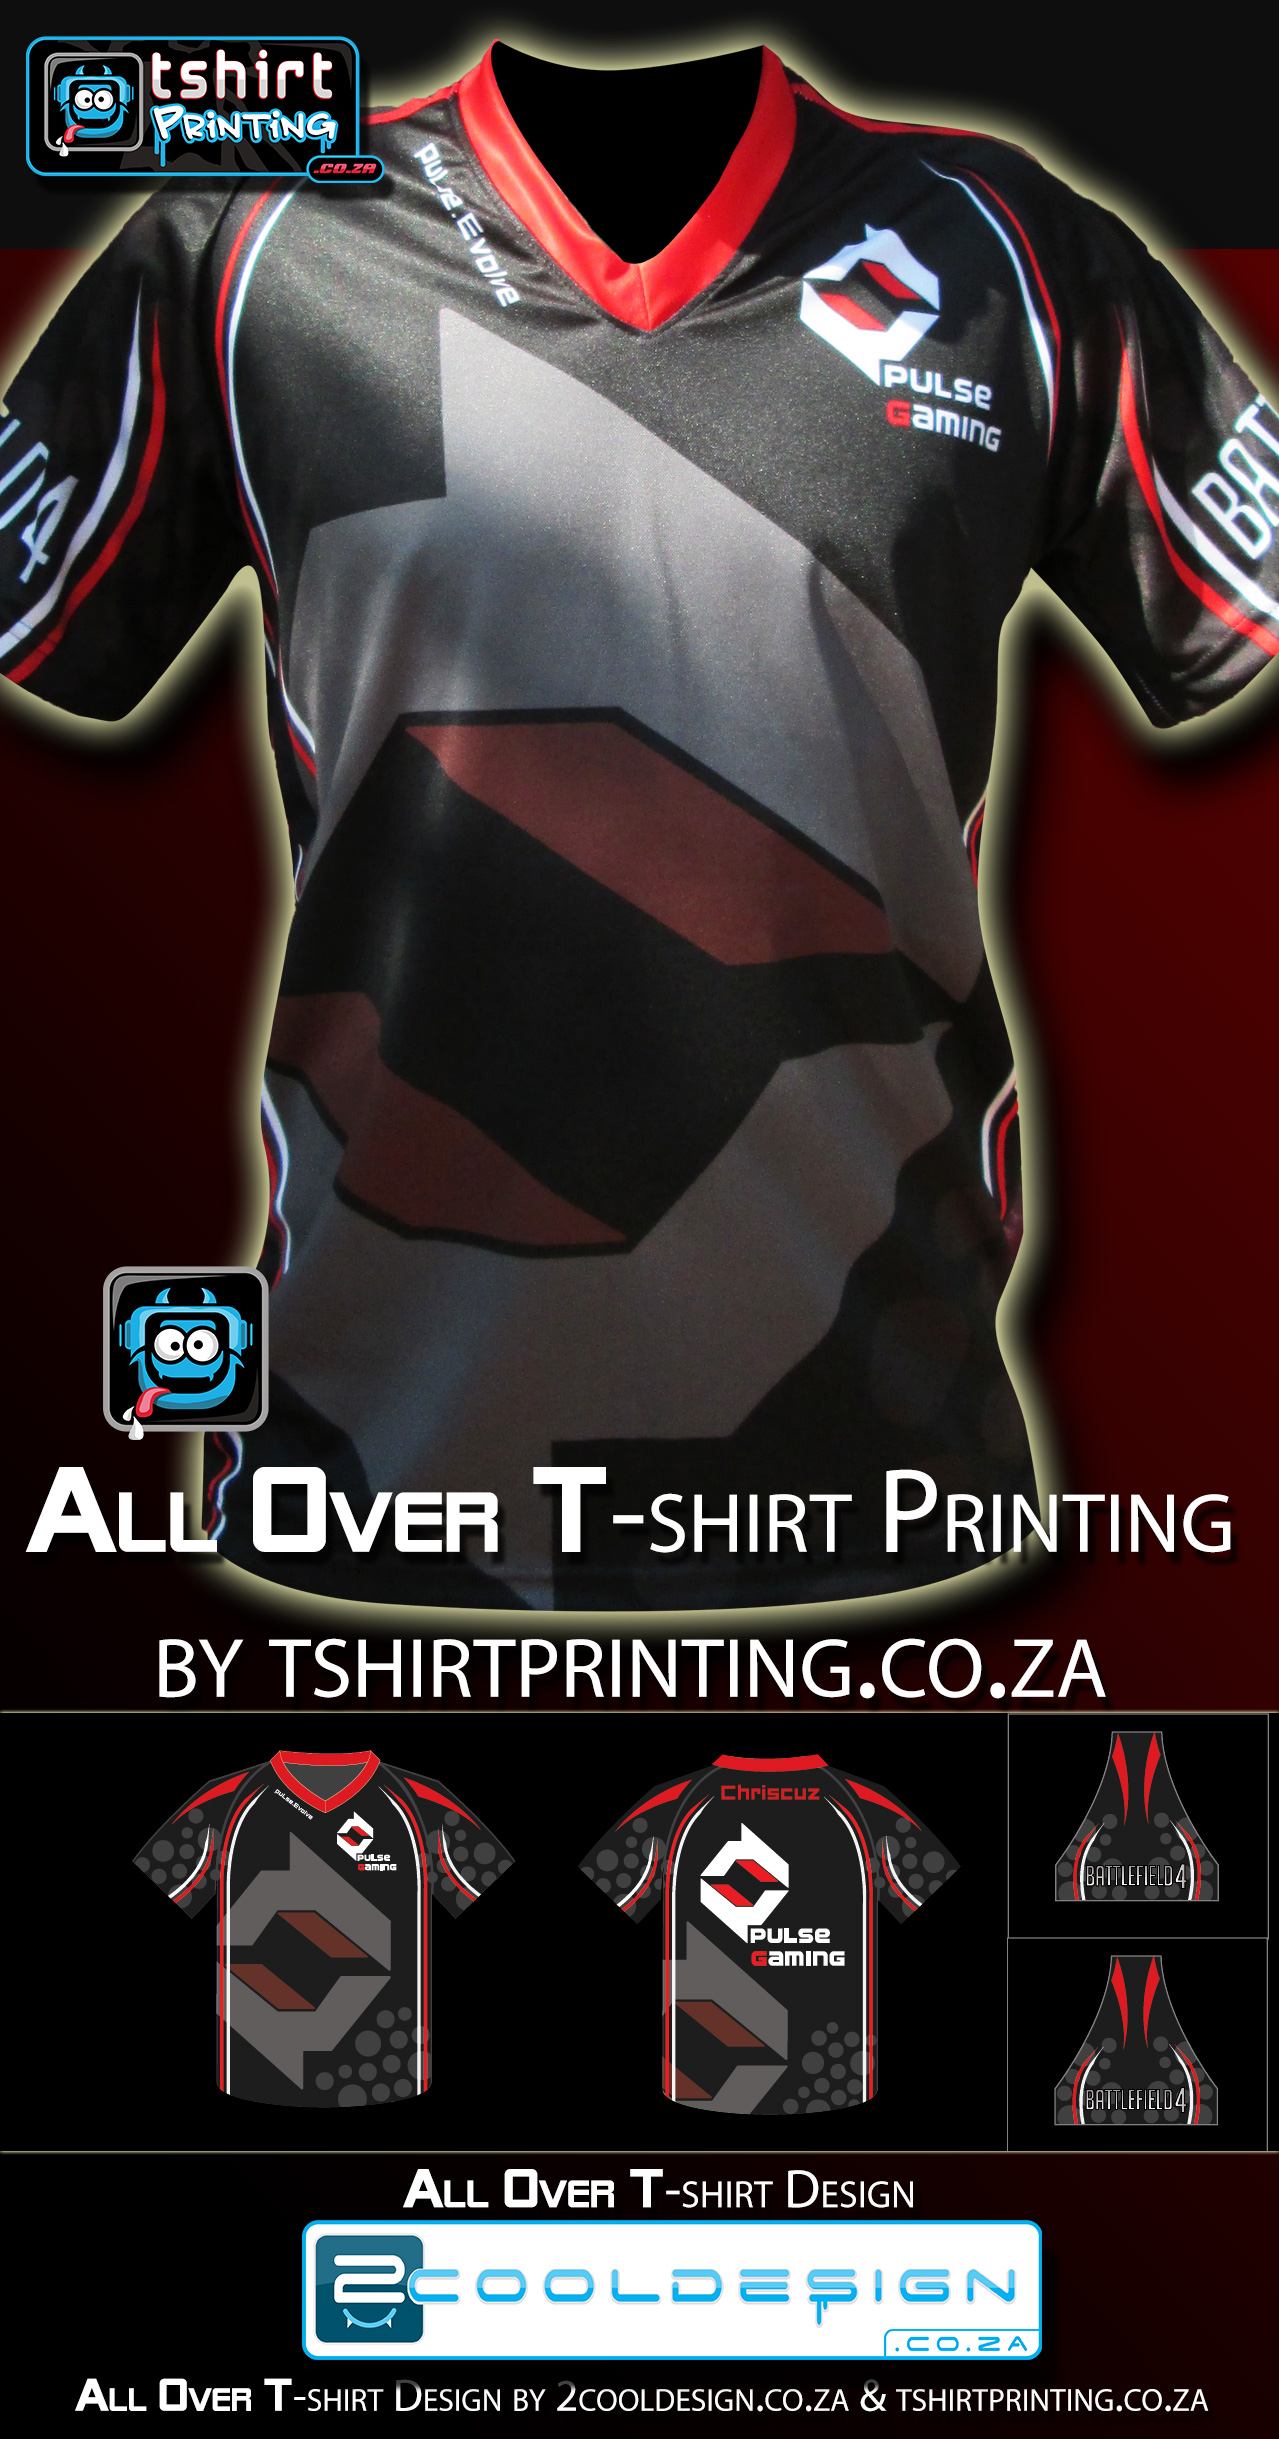 All over printing tshirt printing business for All over printing t shirts